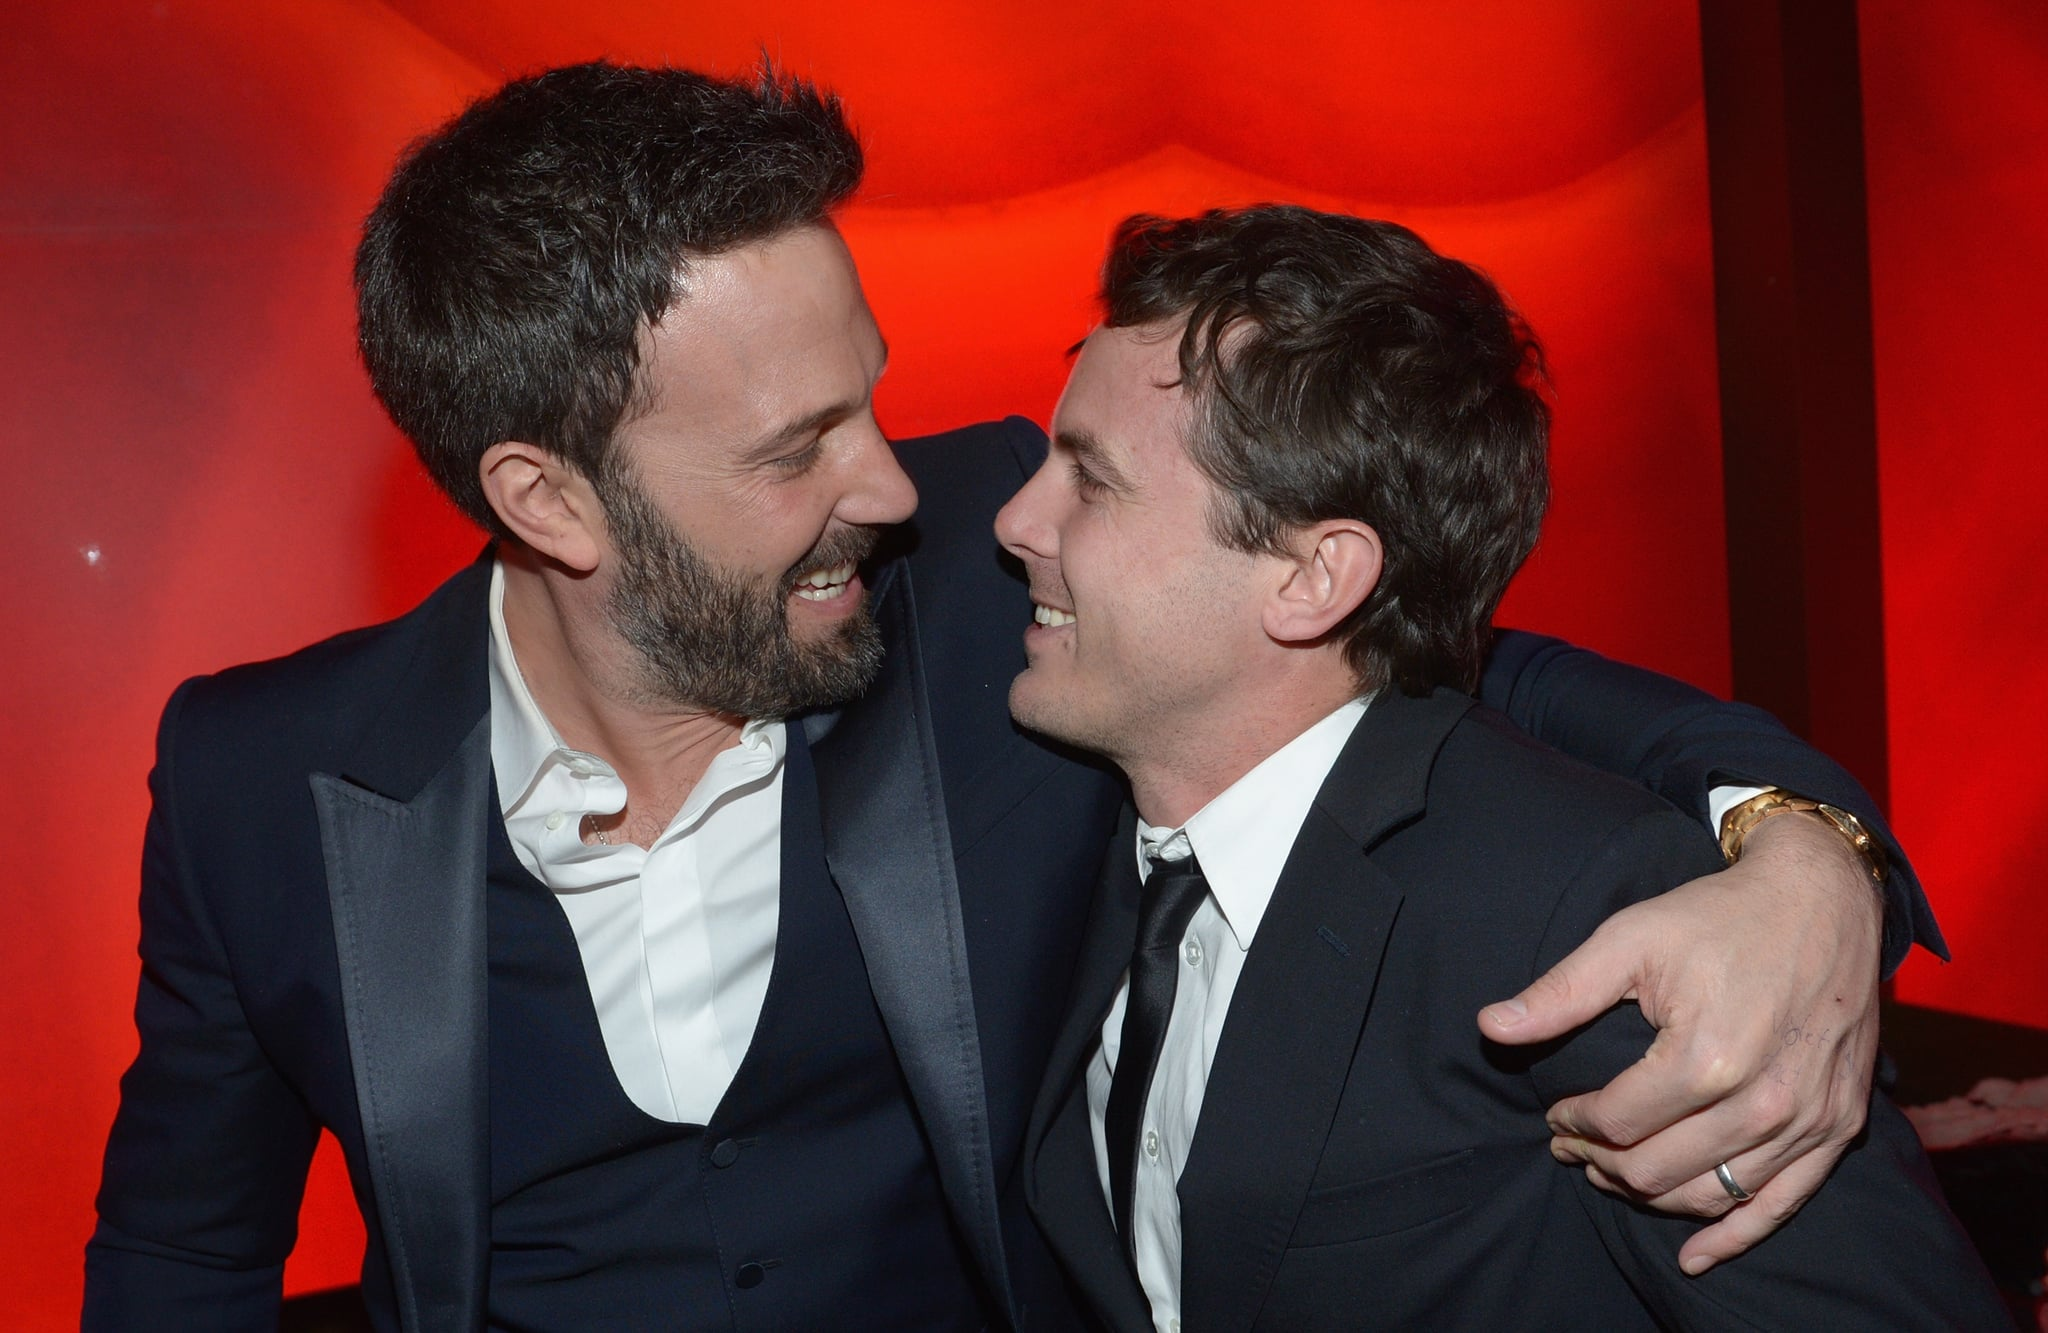 Casey Affleck congratulated Ben Affleck on his Golden Globe wins for Argo.